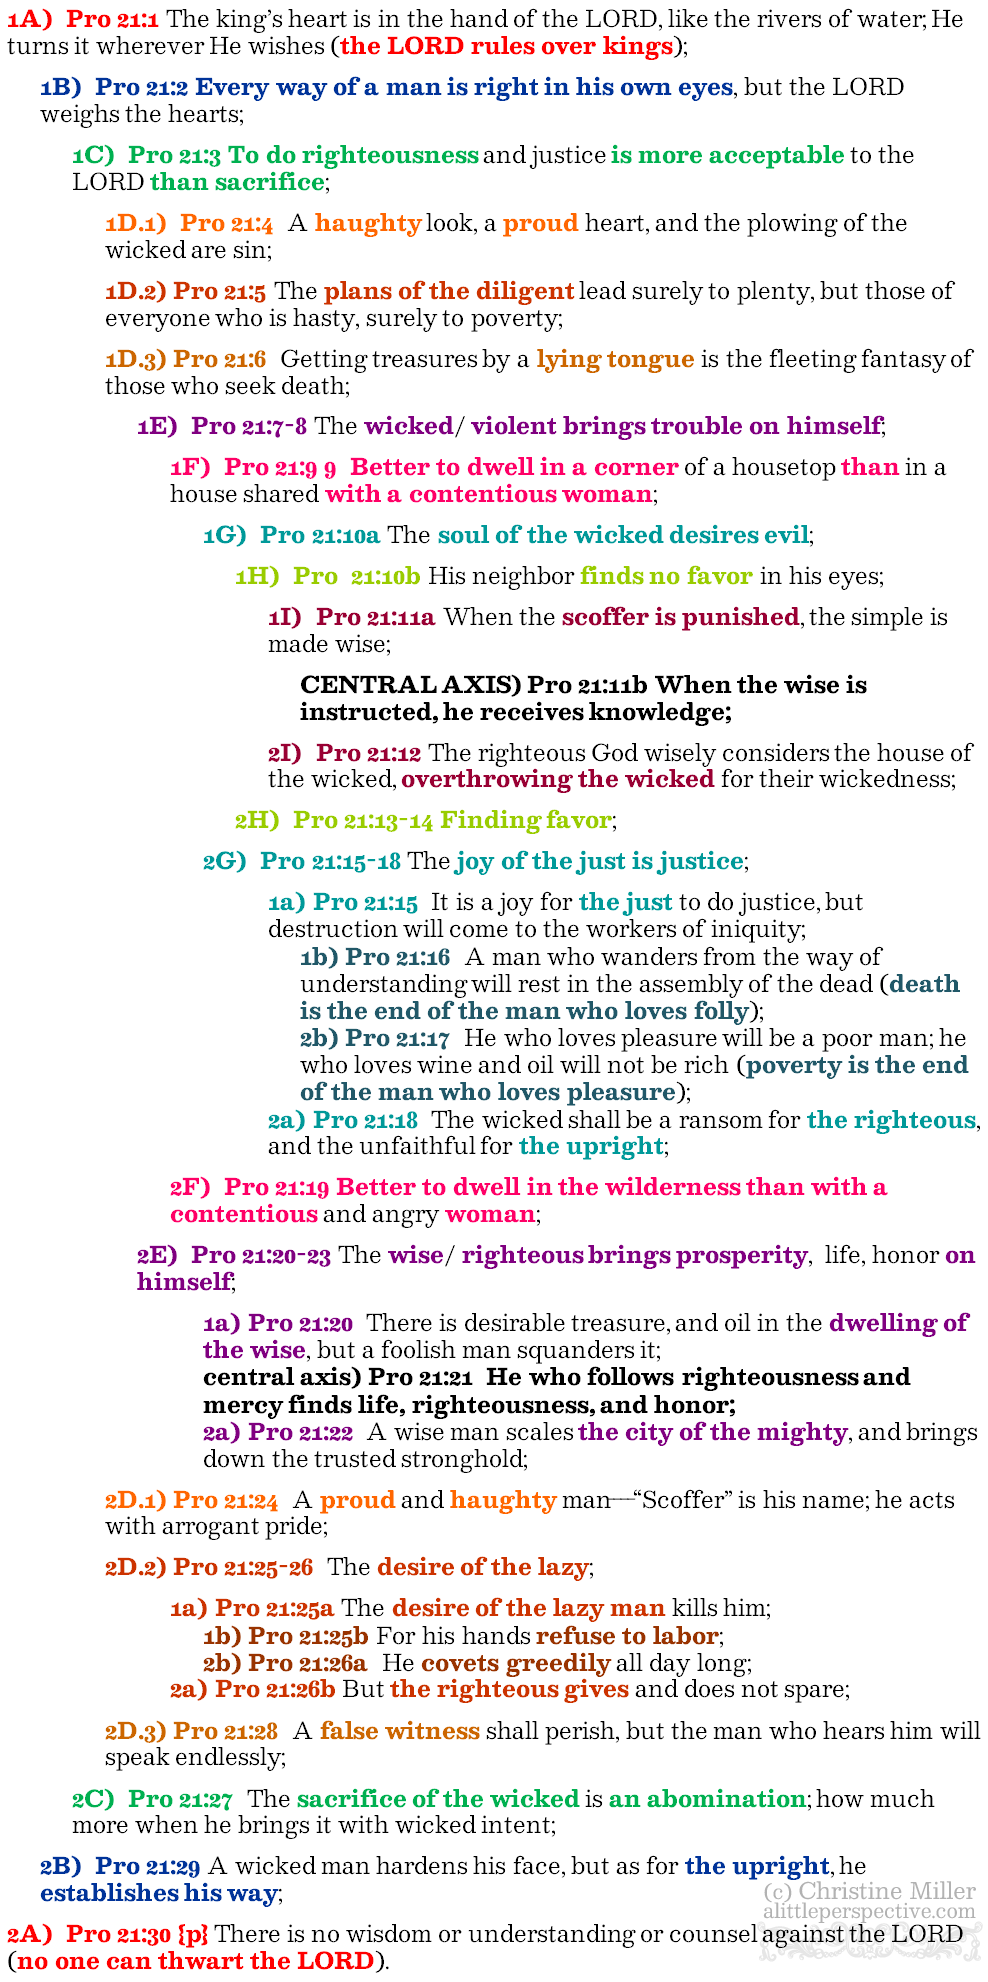 Pro 21:1-30 chiasm | christine's bible study at alittleperspective.com